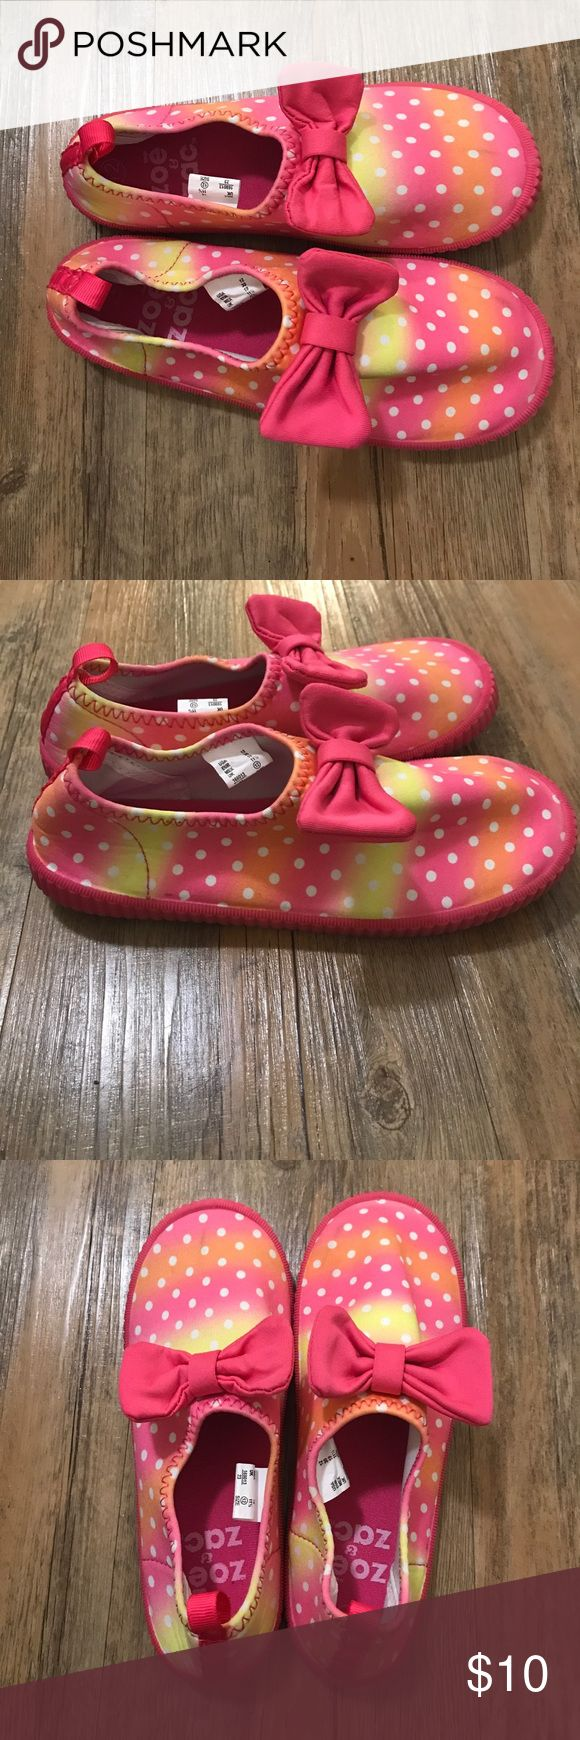 Girls water shoes 12c Worn once very cute water shoes!! zoe and zac Shoes Water Shoes